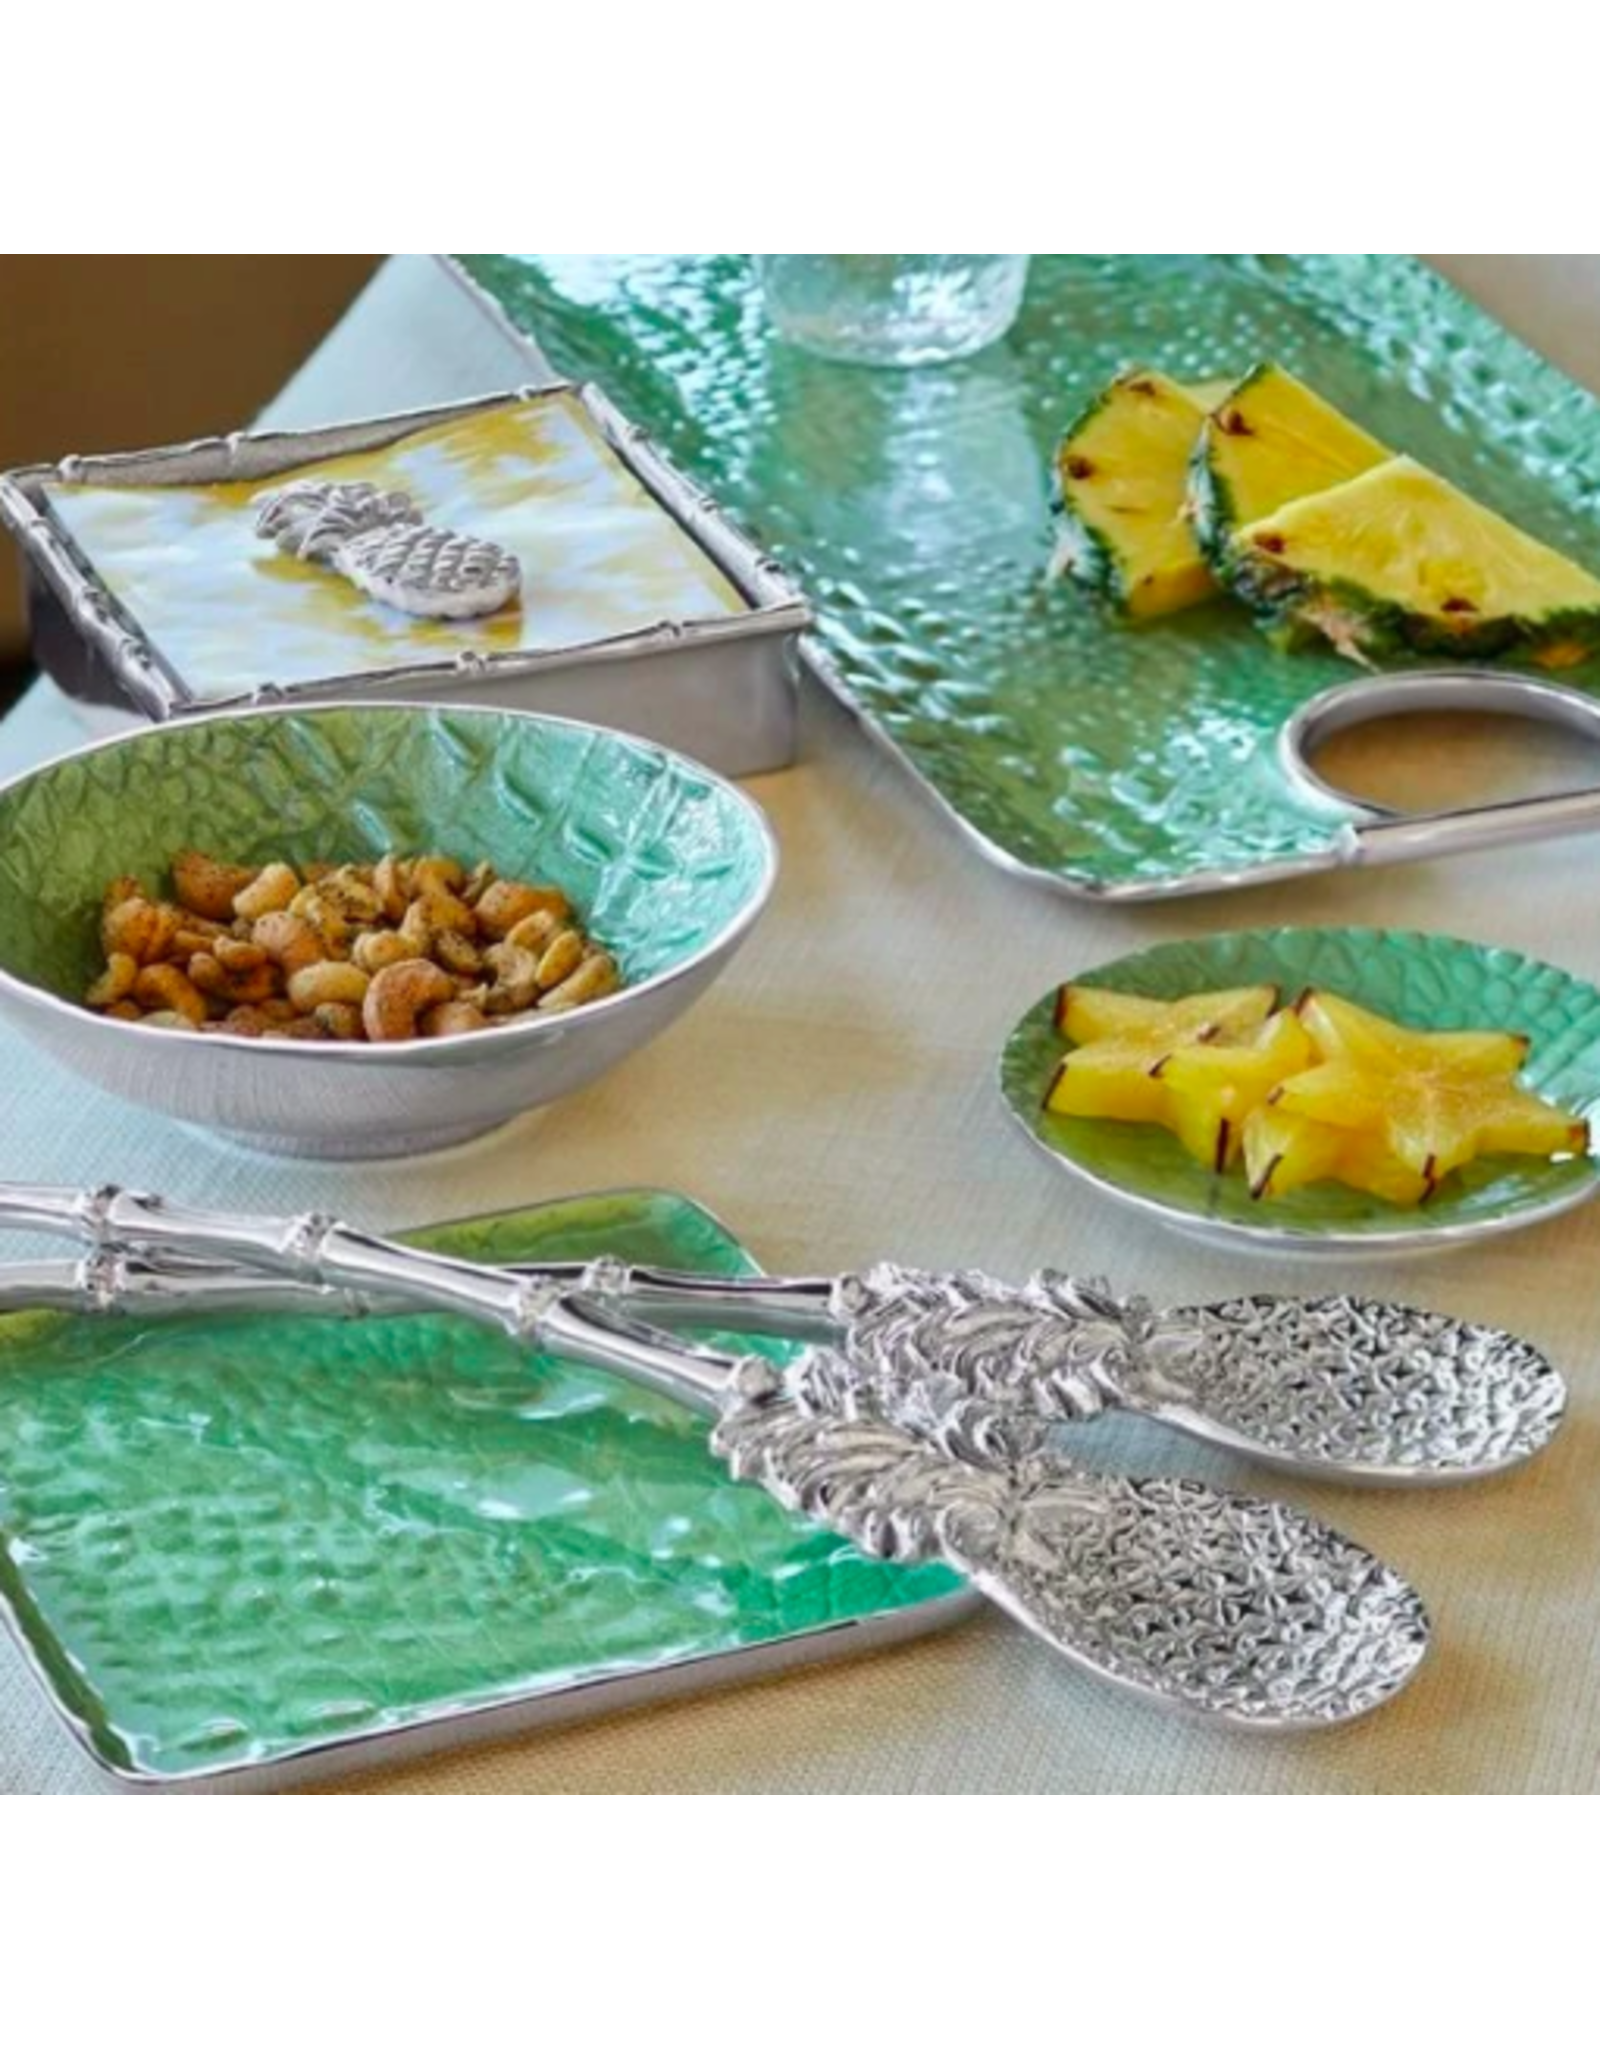 Mariposa Pineapple Salad Servers